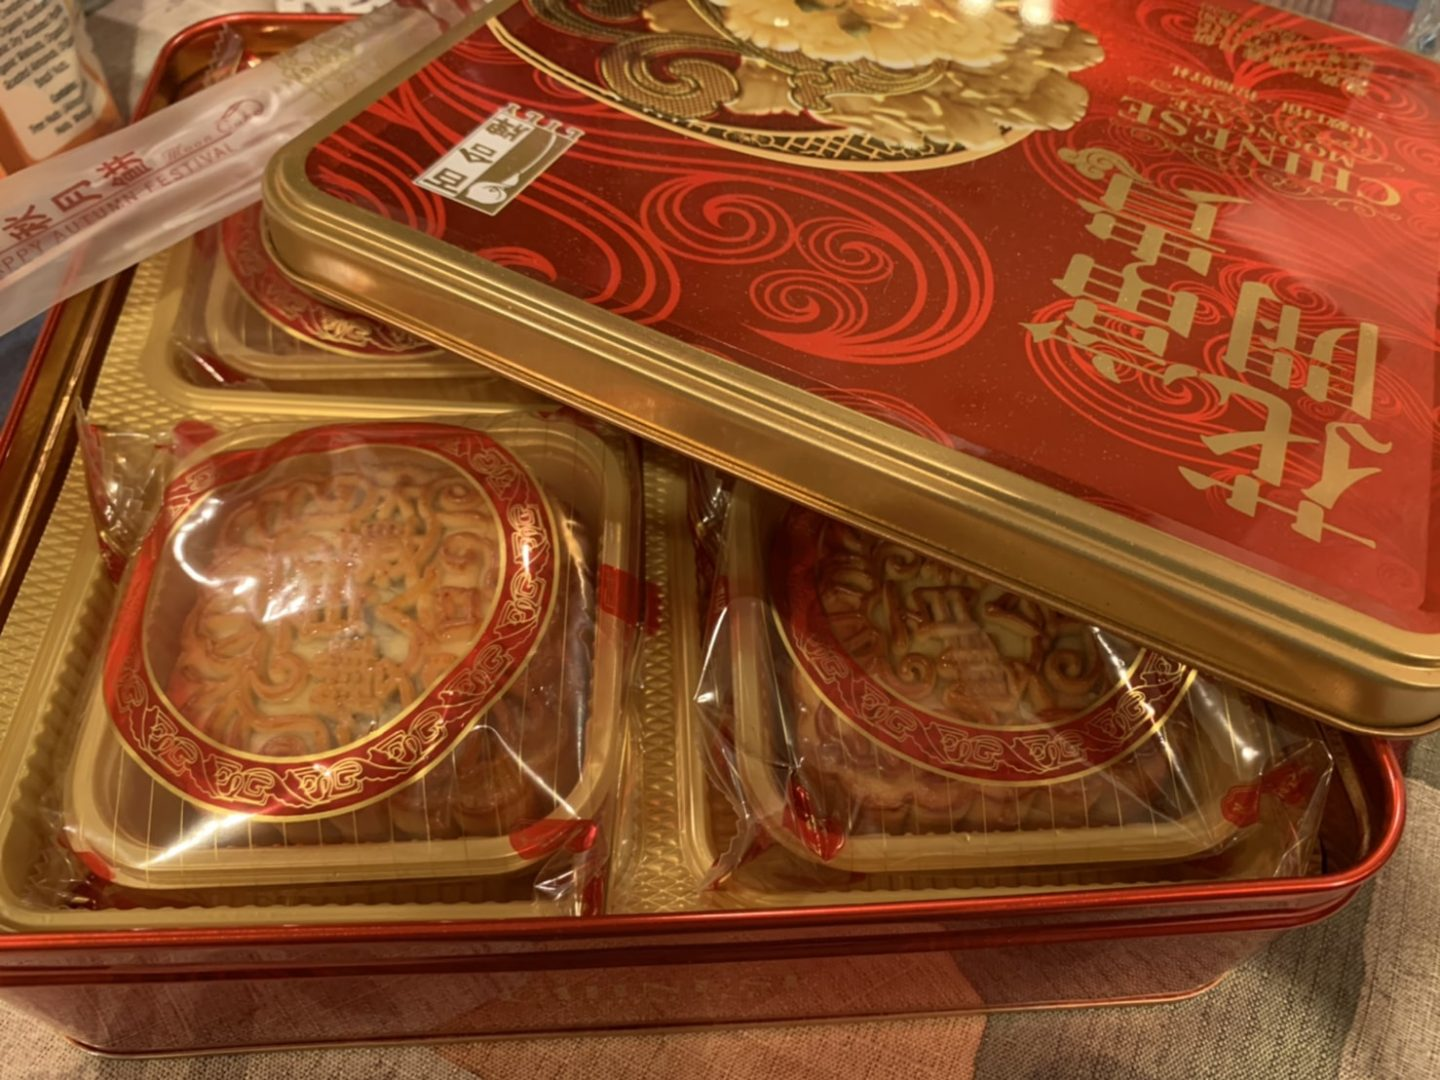 mooncakes sold in stores - mid-autumn festival 2021